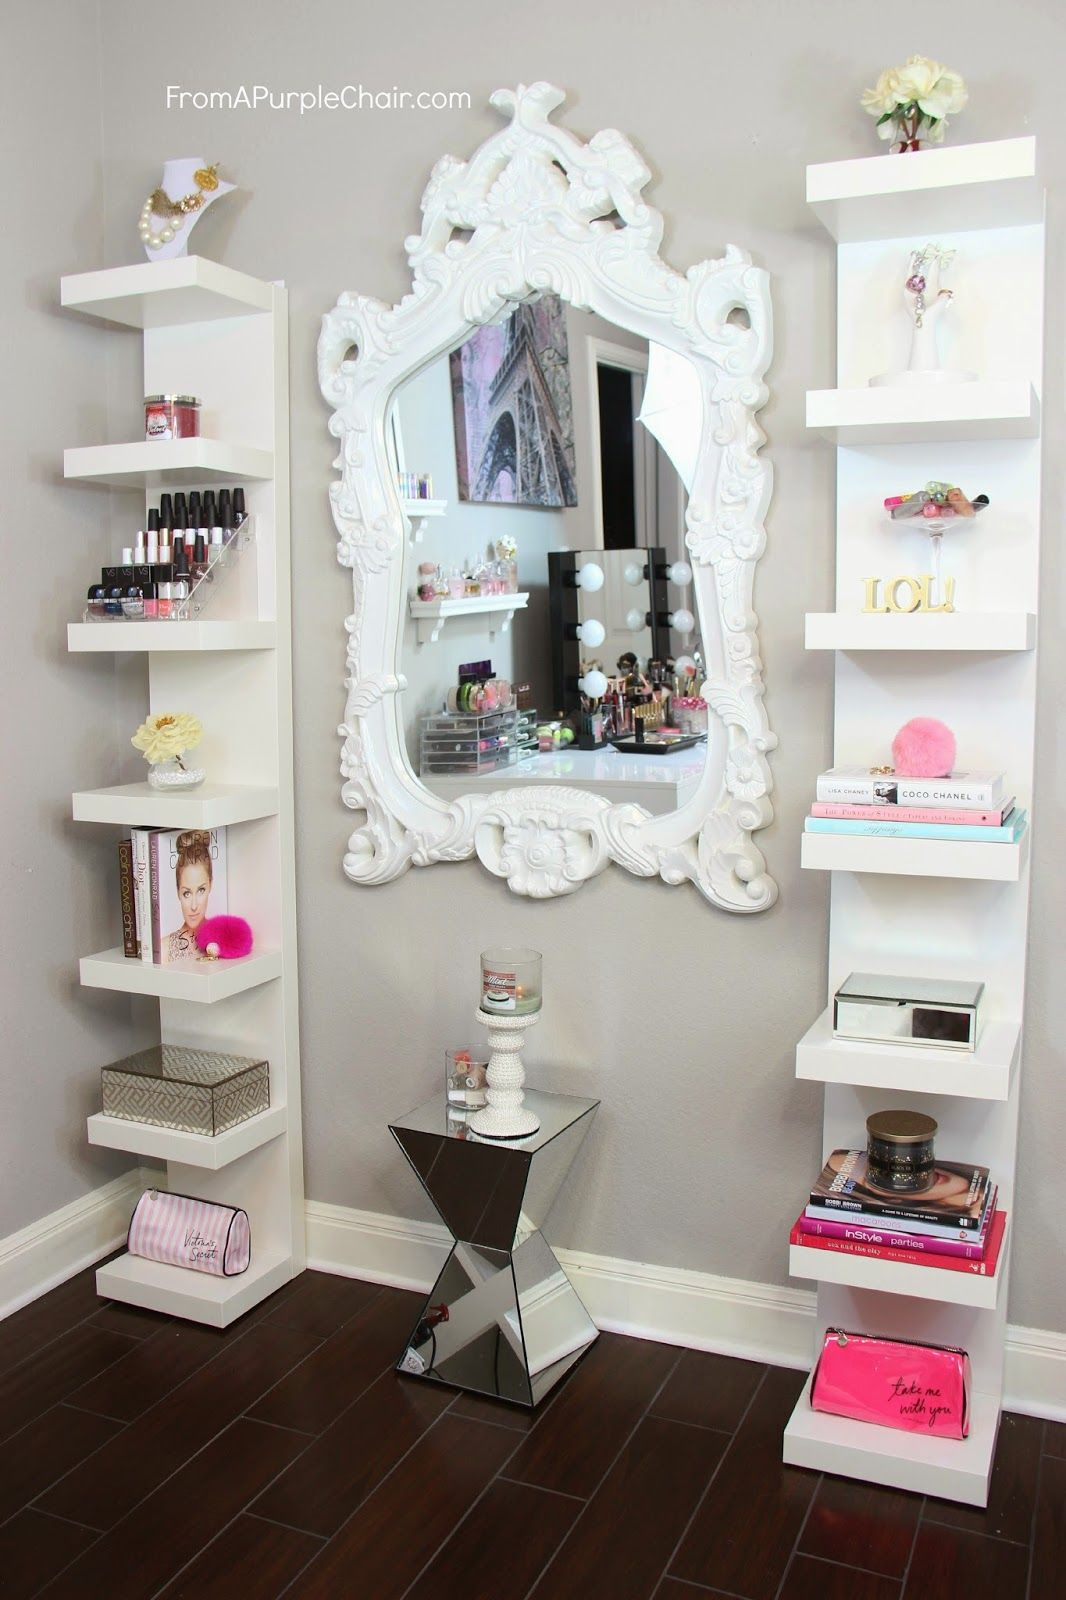 Salon Vintage Ikea Miss Liz Heart Beauty Room Decor How I Style My Ikea